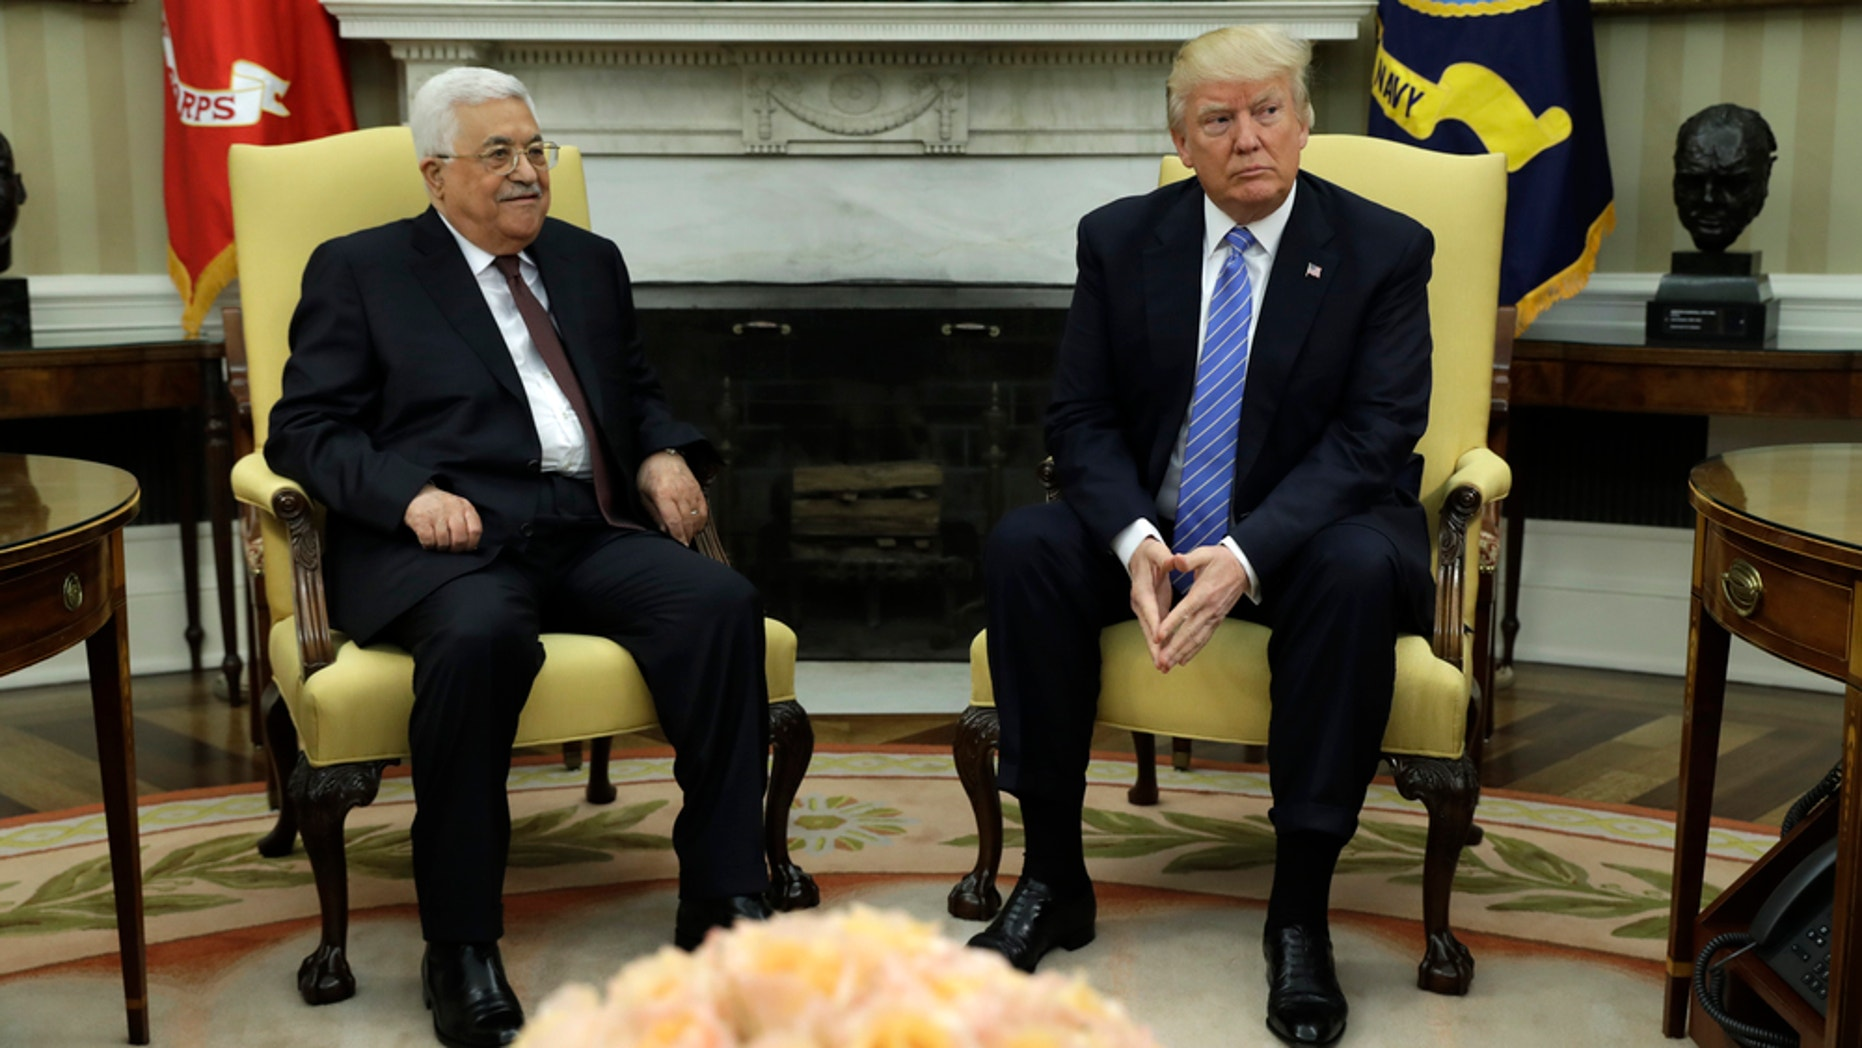 President Donald Trump is pictured with Palestinian leader Mahmoud Abbas at the White House earlier this month. Trump will meet Abbas in Bethlehem during his first foreign rip.